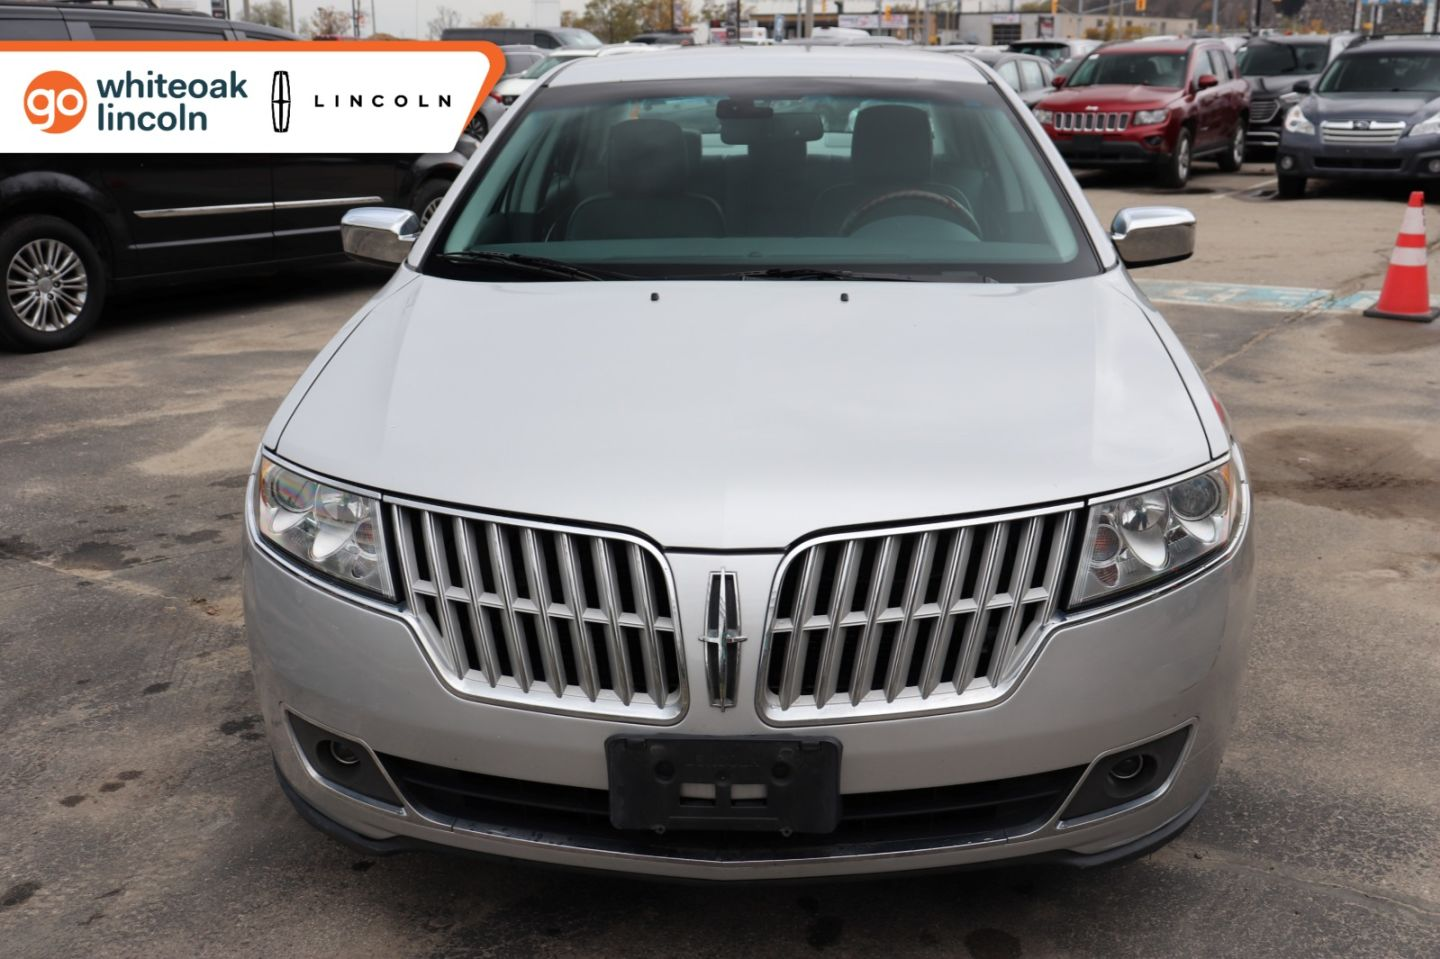 2010 Lincoln MKZ  for sale in Mississauga, Ontario